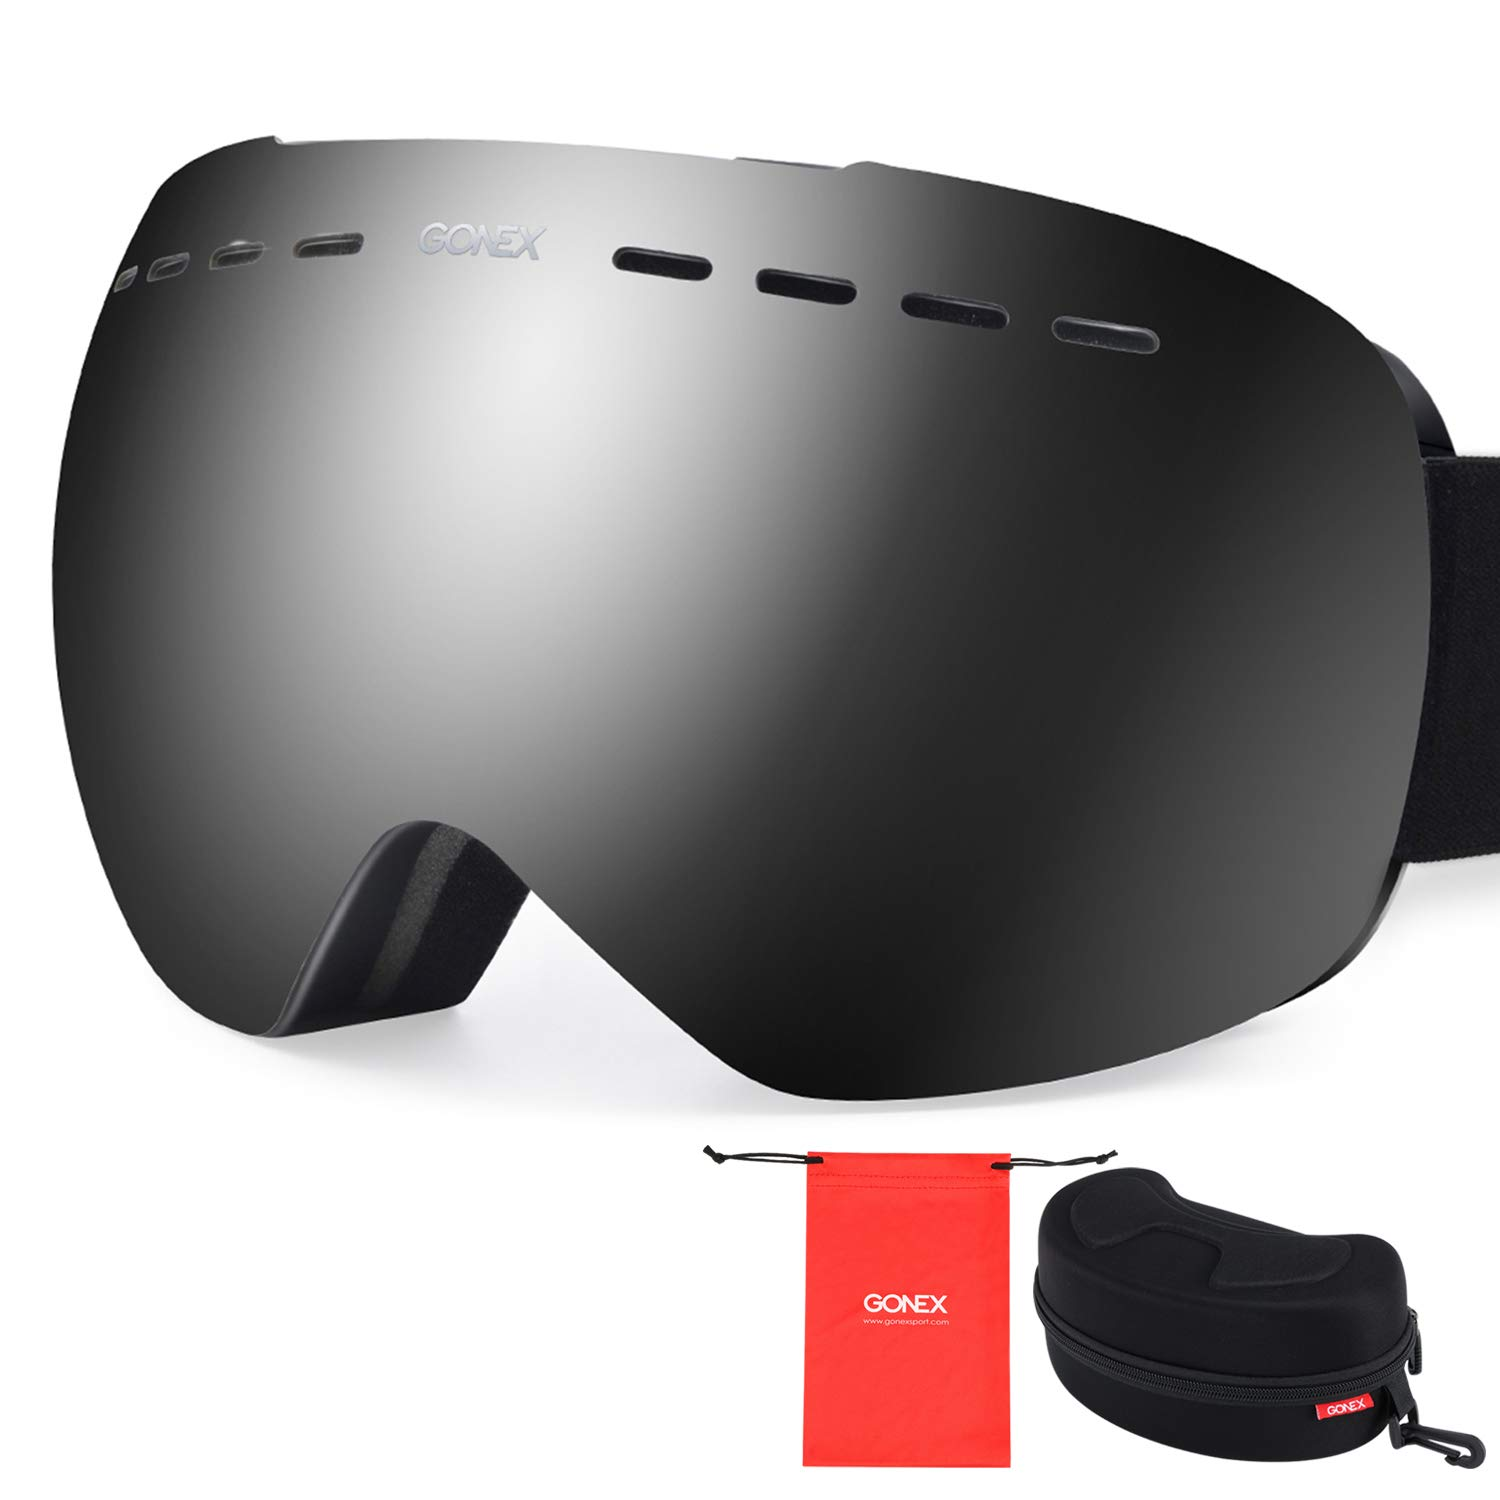 fb12f176164 Amazon.com   Gonex Oversized Ski Snow Goggles Anti-Fog UV Protection with  Frameless Double Spherical Lens for Skiing Snowboard Skate Winter Sports+  Goggle ...